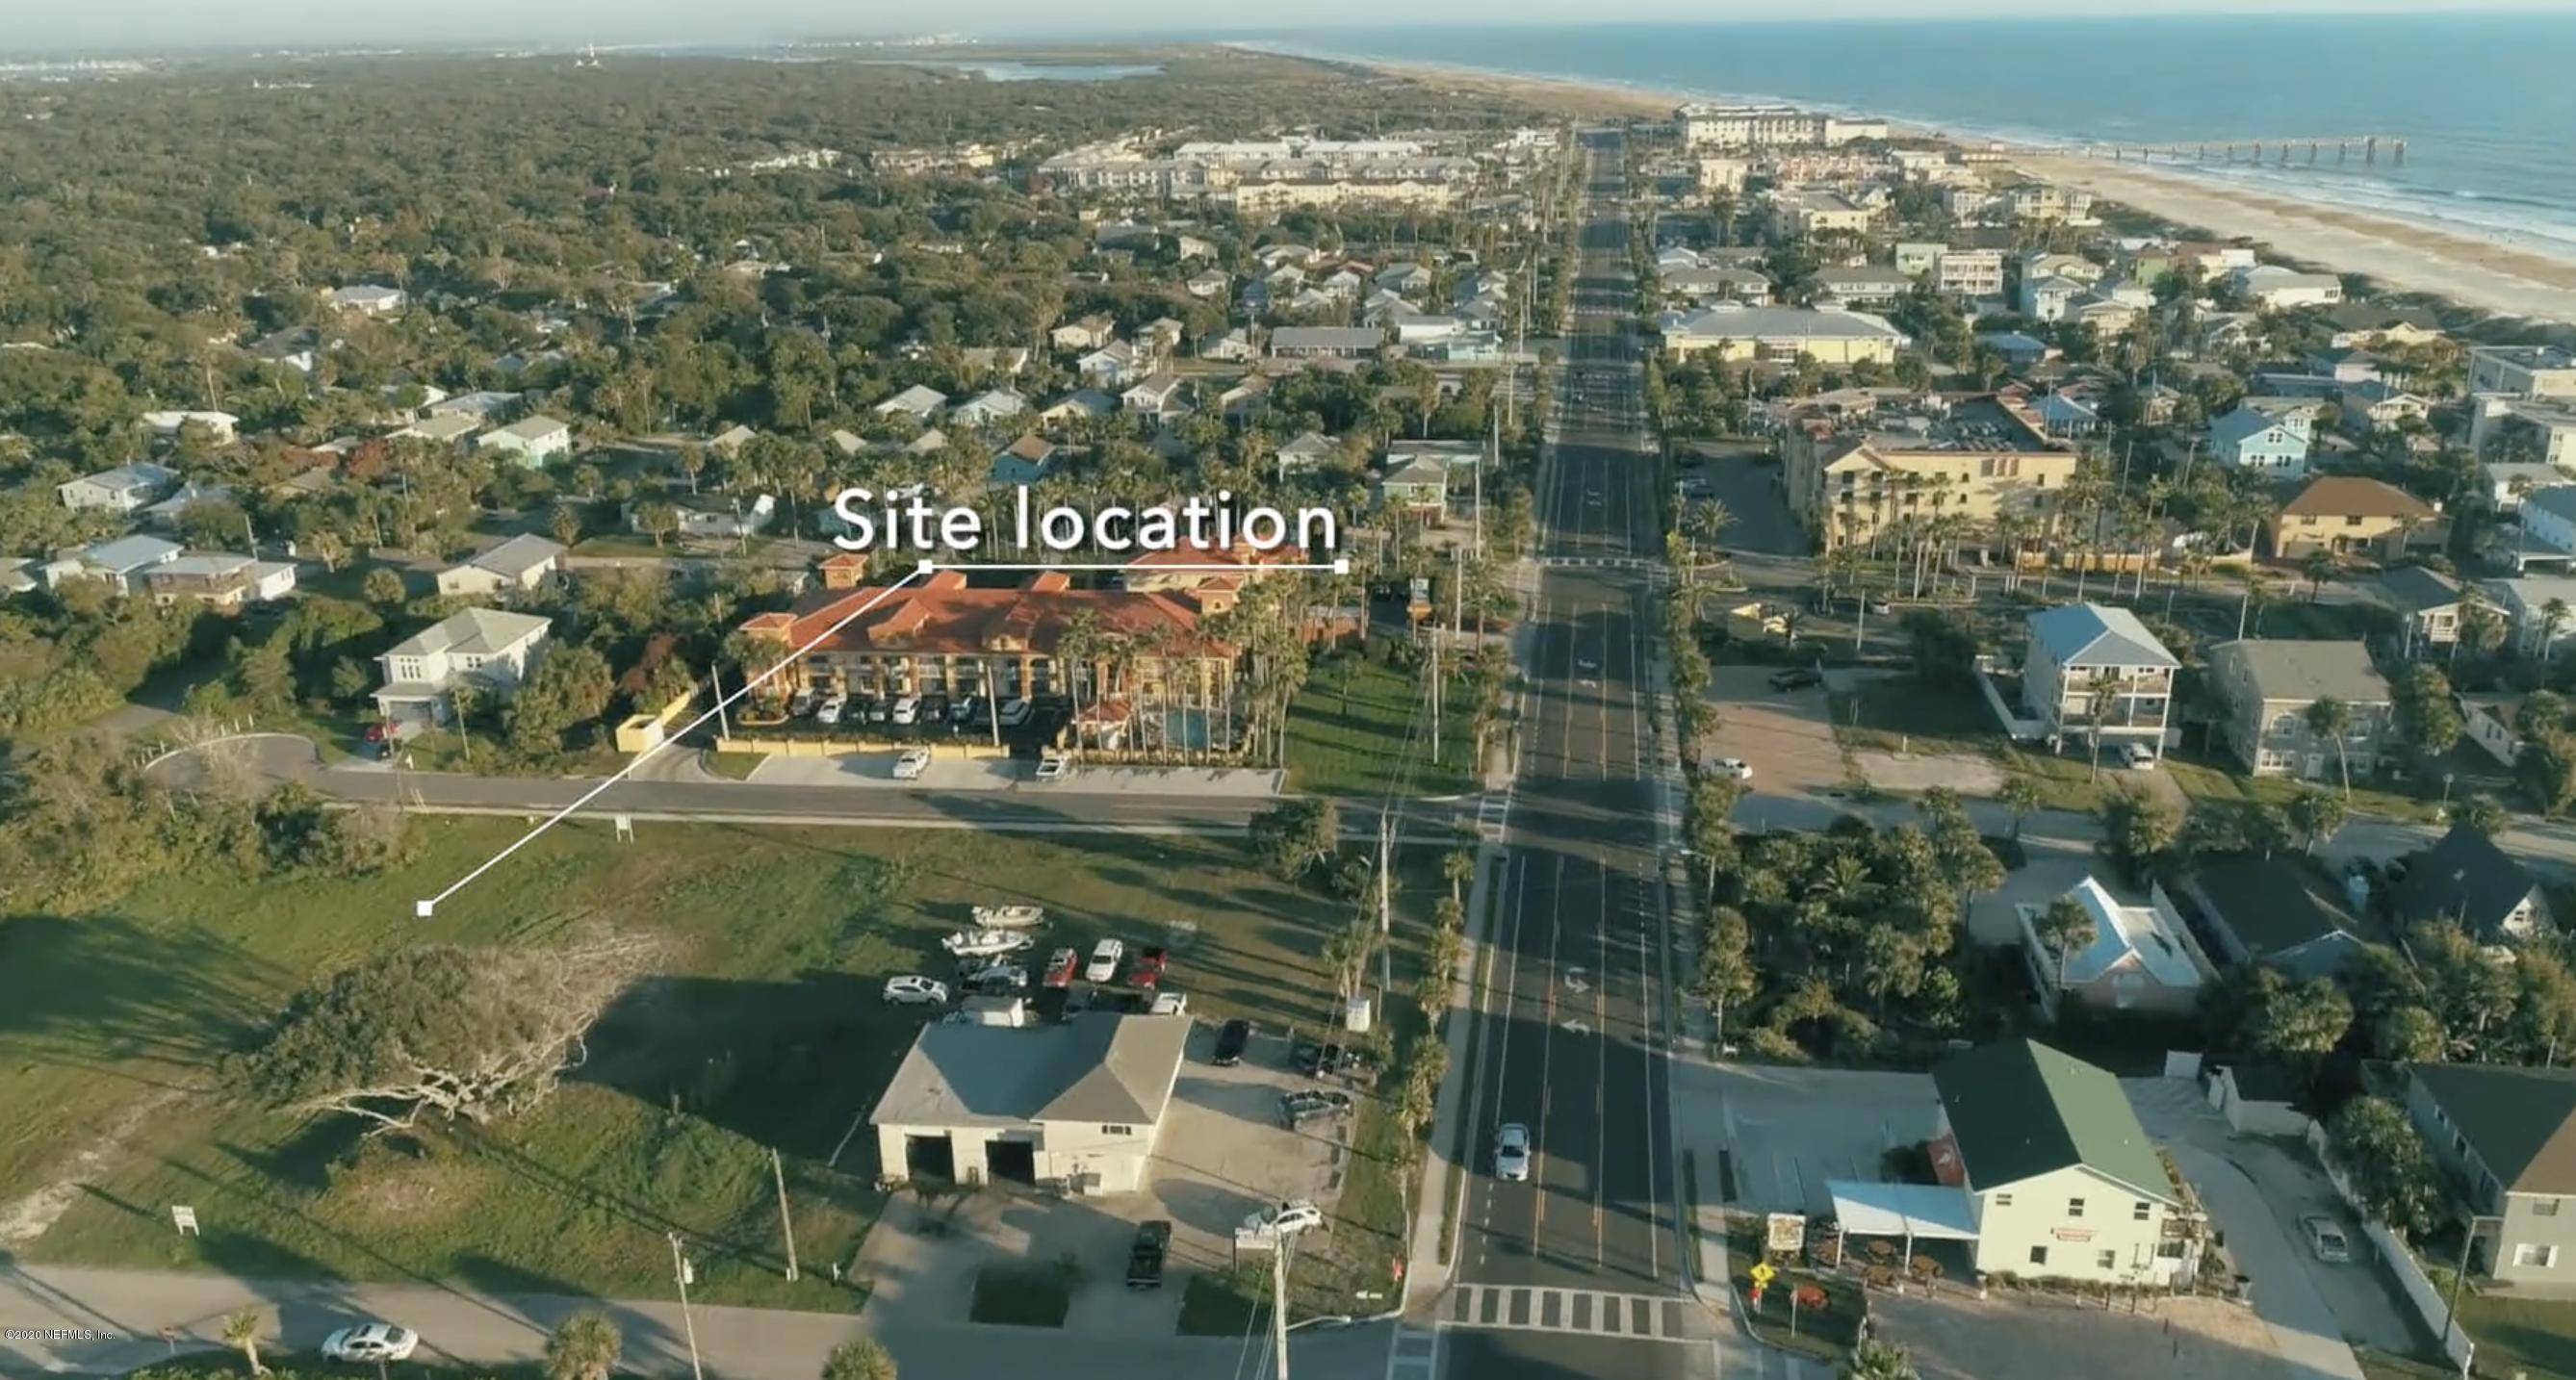 112 7TH, ST AUGUSTINE, FLORIDA 32080, 4 Bedrooms Bedrooms, ,3 BathroomsBathrooms,Residential,For sale,7TH,1051743